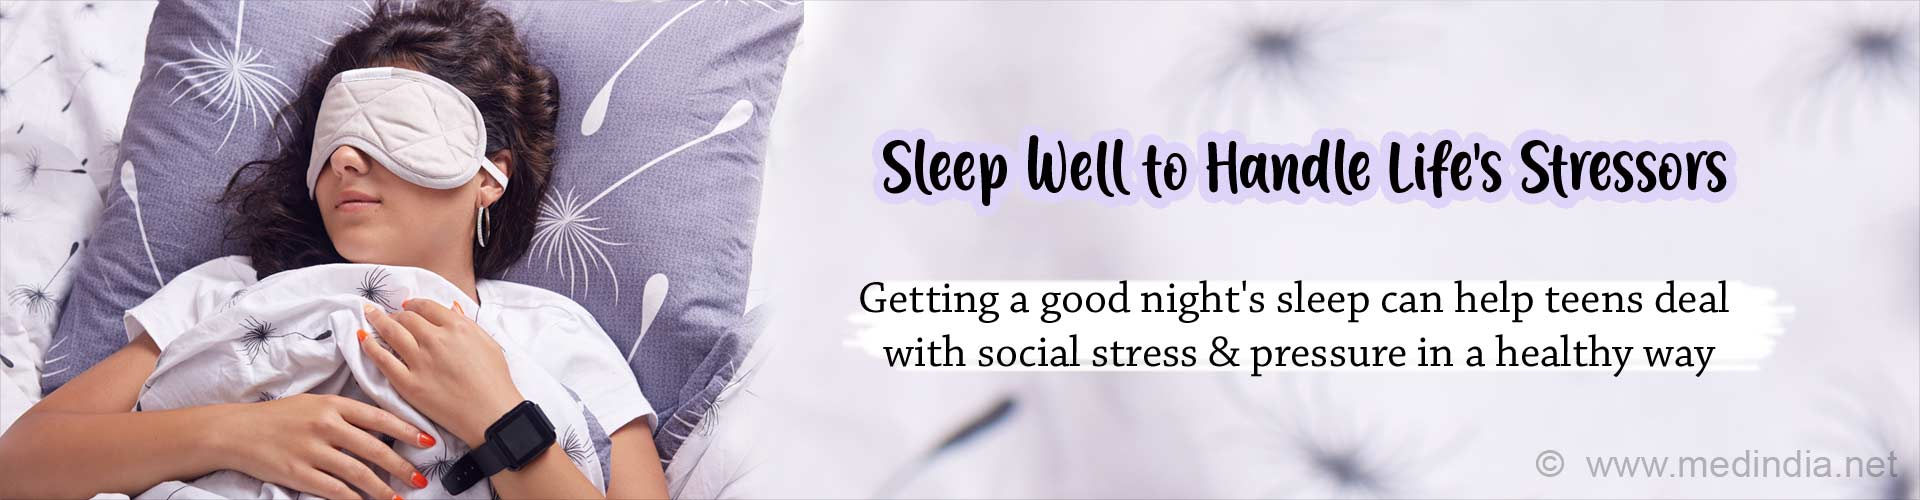 Sleep well to handle life's stressors. Getting a good night's sleep can help teens deal with social stress and pressure in a healthy way.